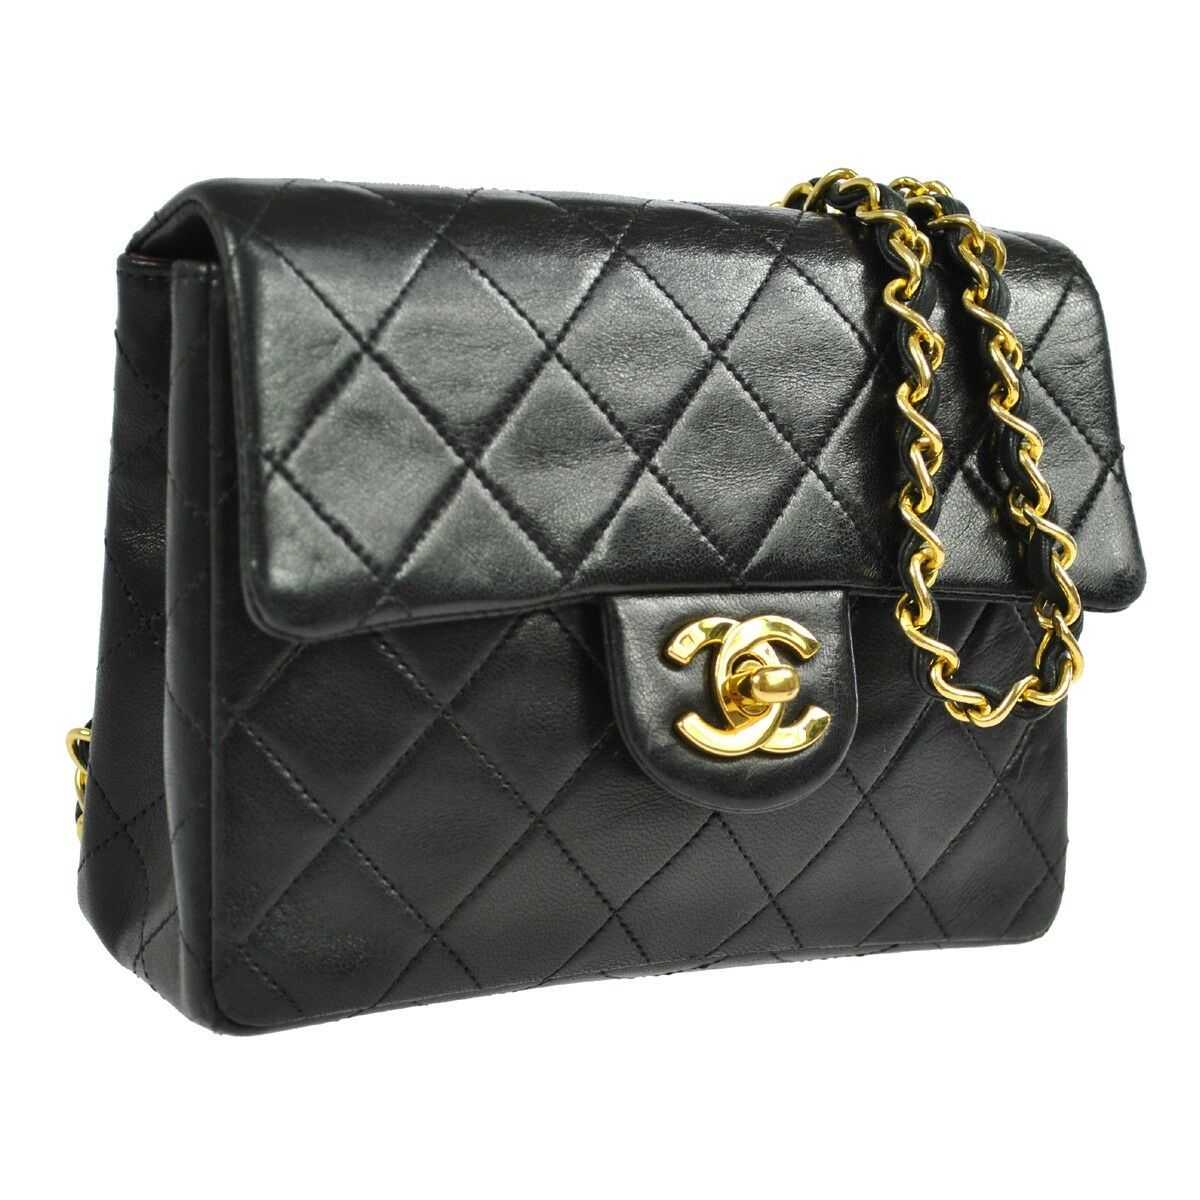 7b798a122c03 Cloth Bags: Chanel Quilted Bag Uk